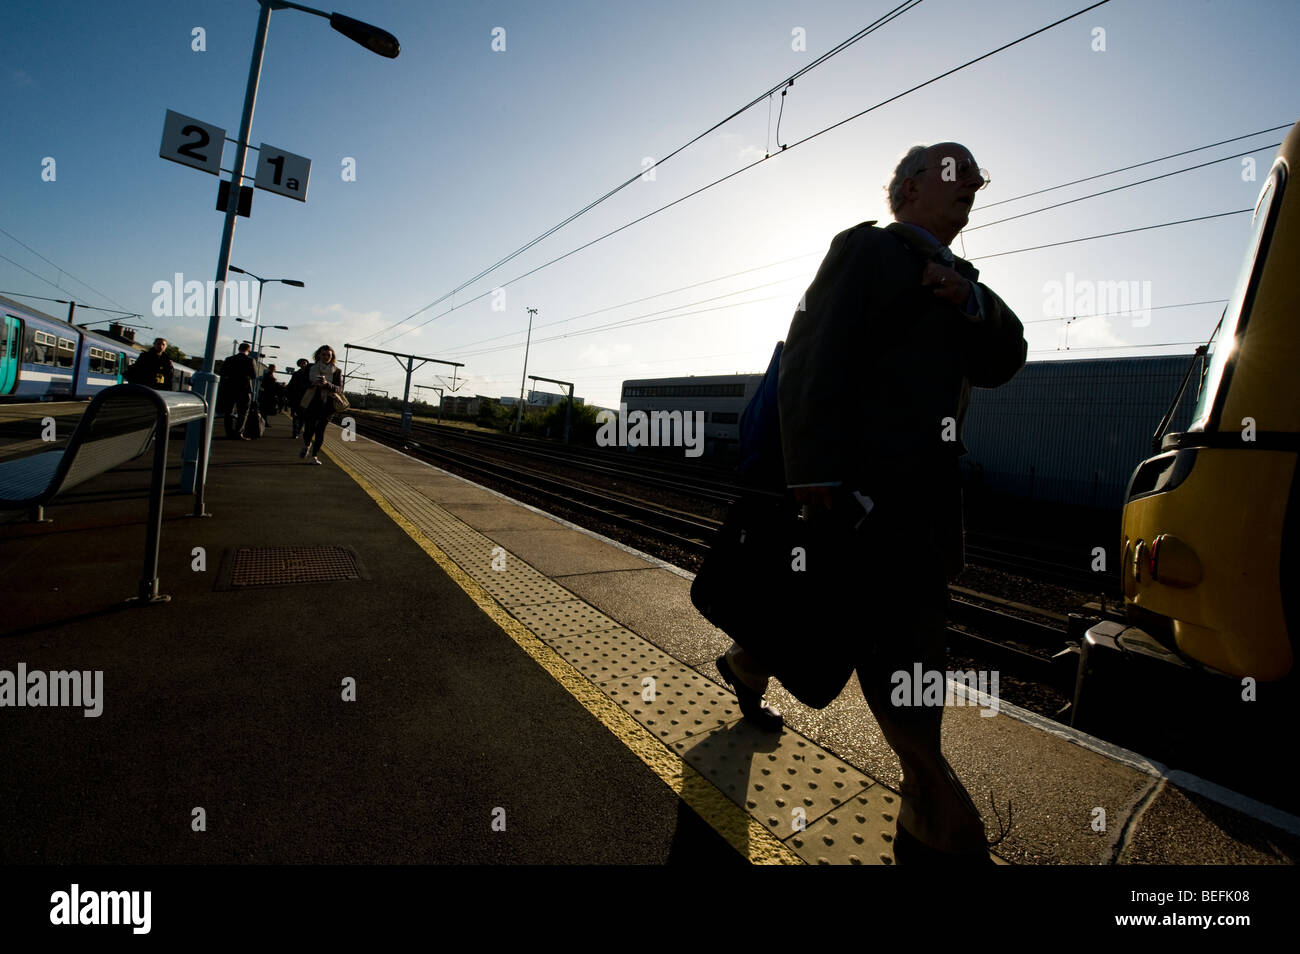 Silhouette of passengers walking along a railway station platform in England. - Stock Image